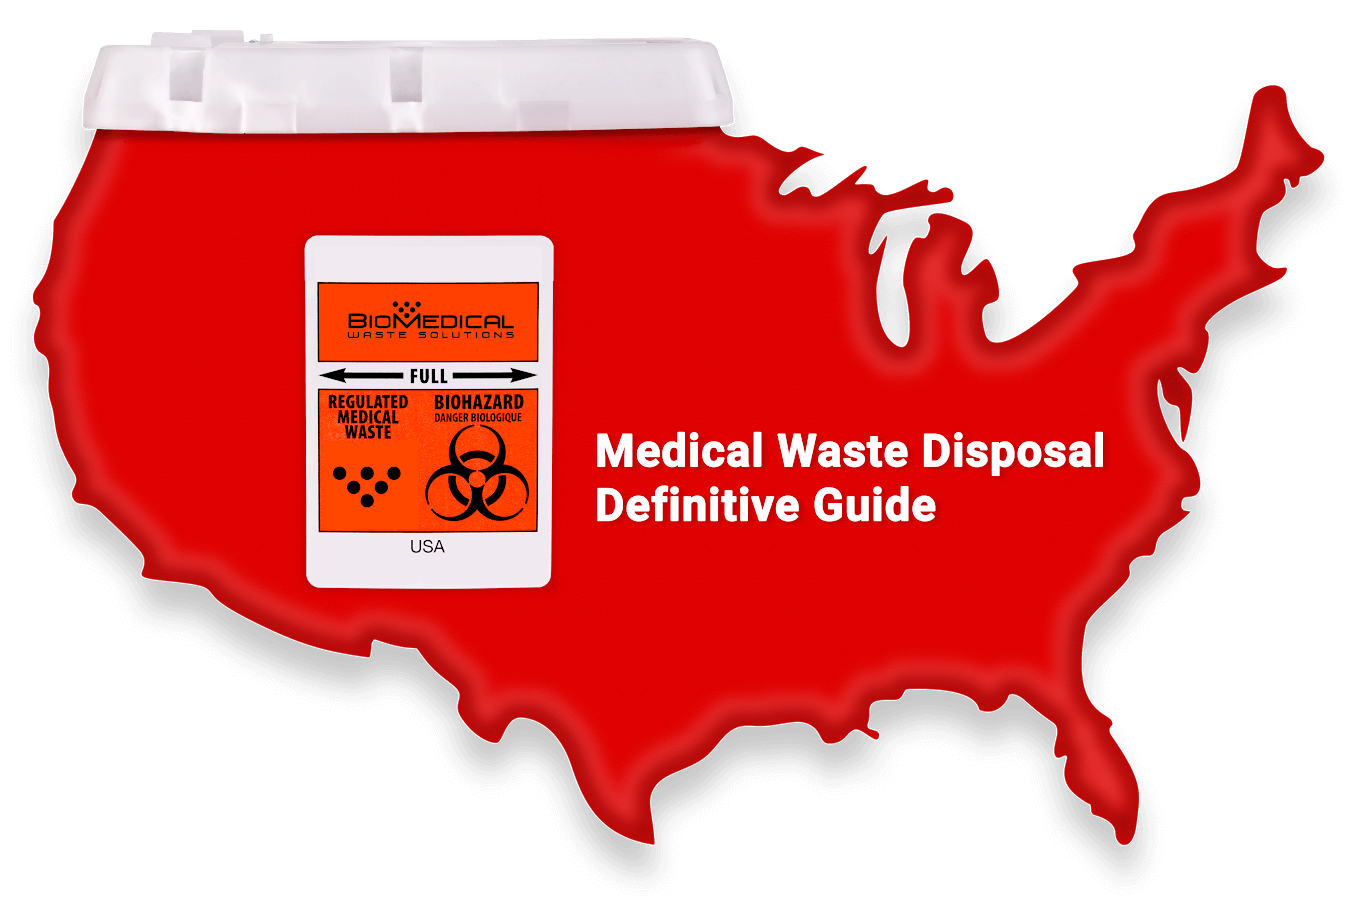 Medical Waste Disposal Definitive Guide Infographic